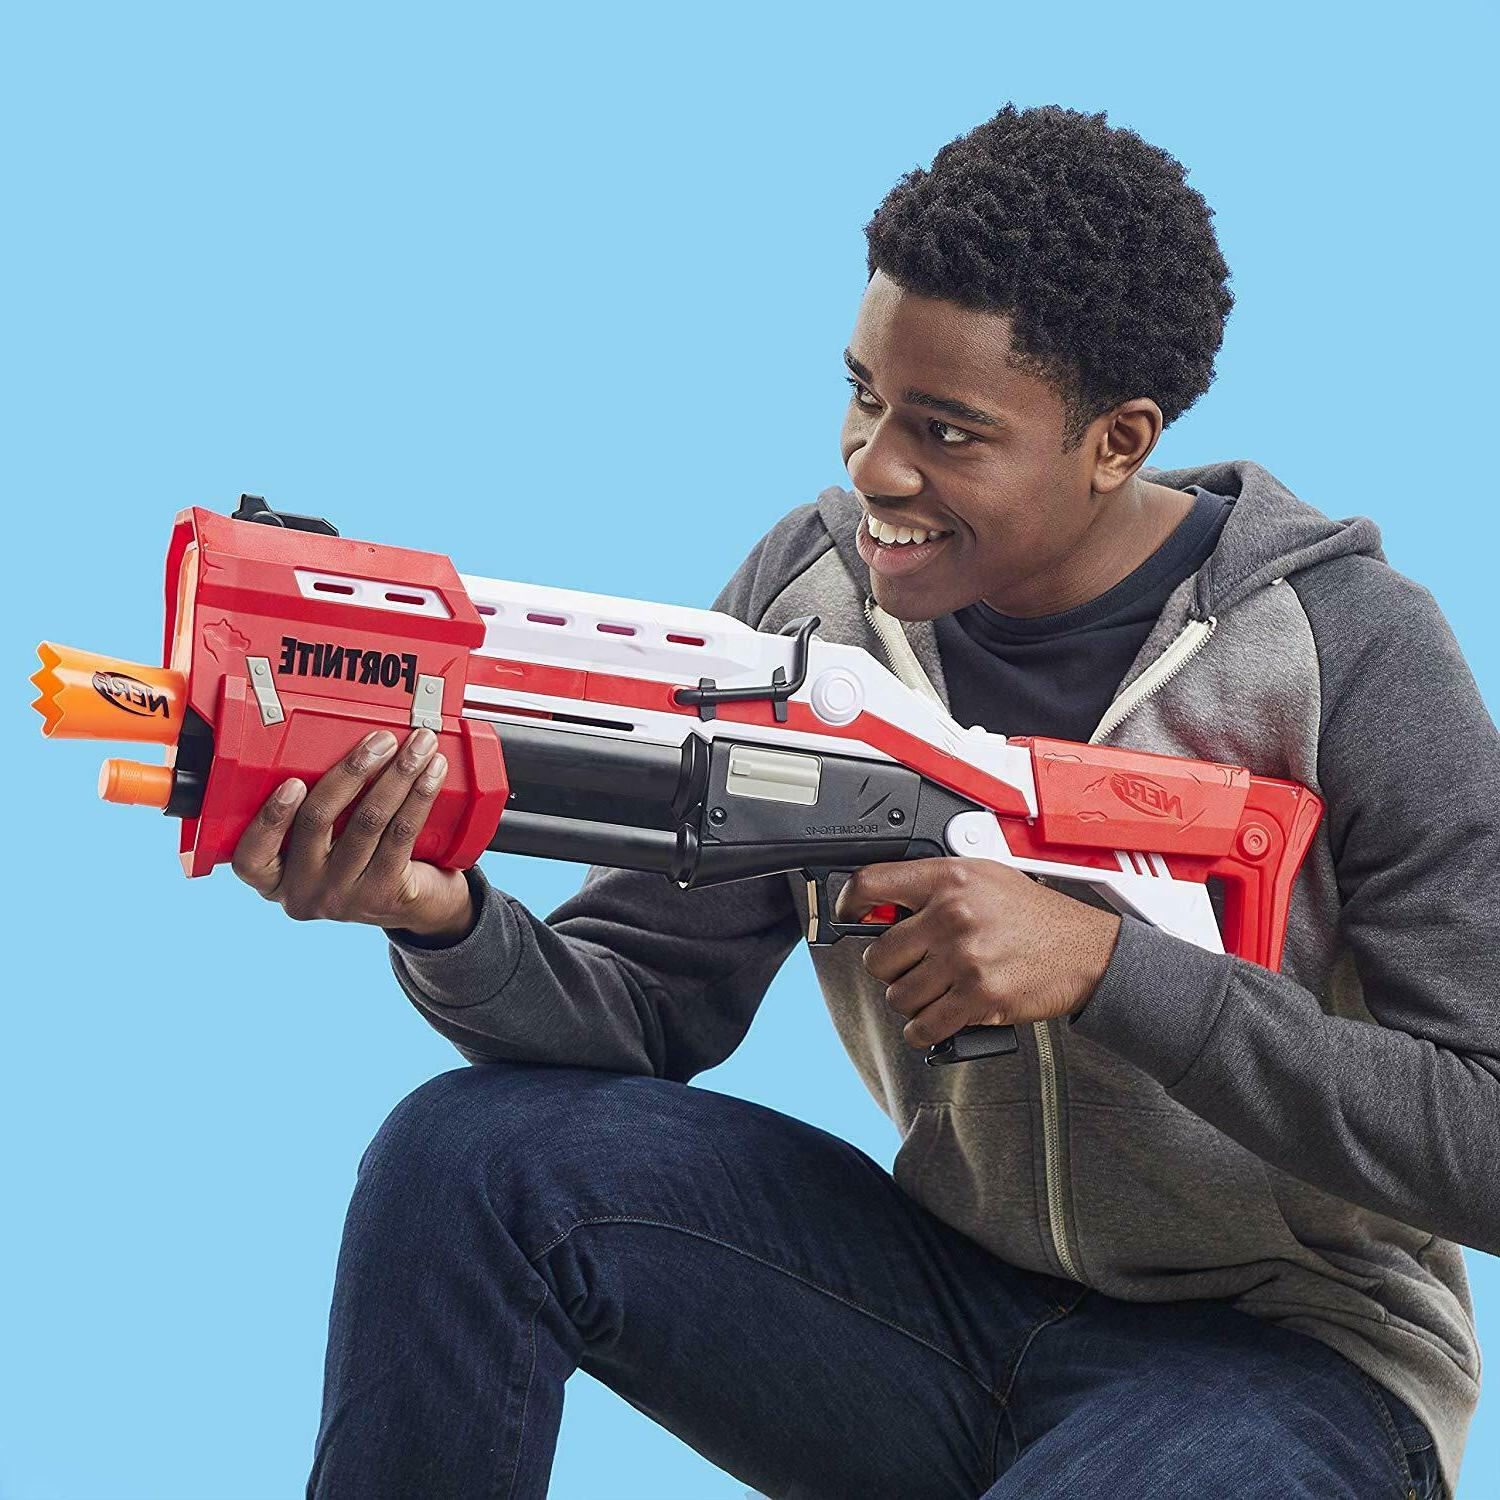 Fortnite Guns For Nerf Guns For Girls Fortnite Best